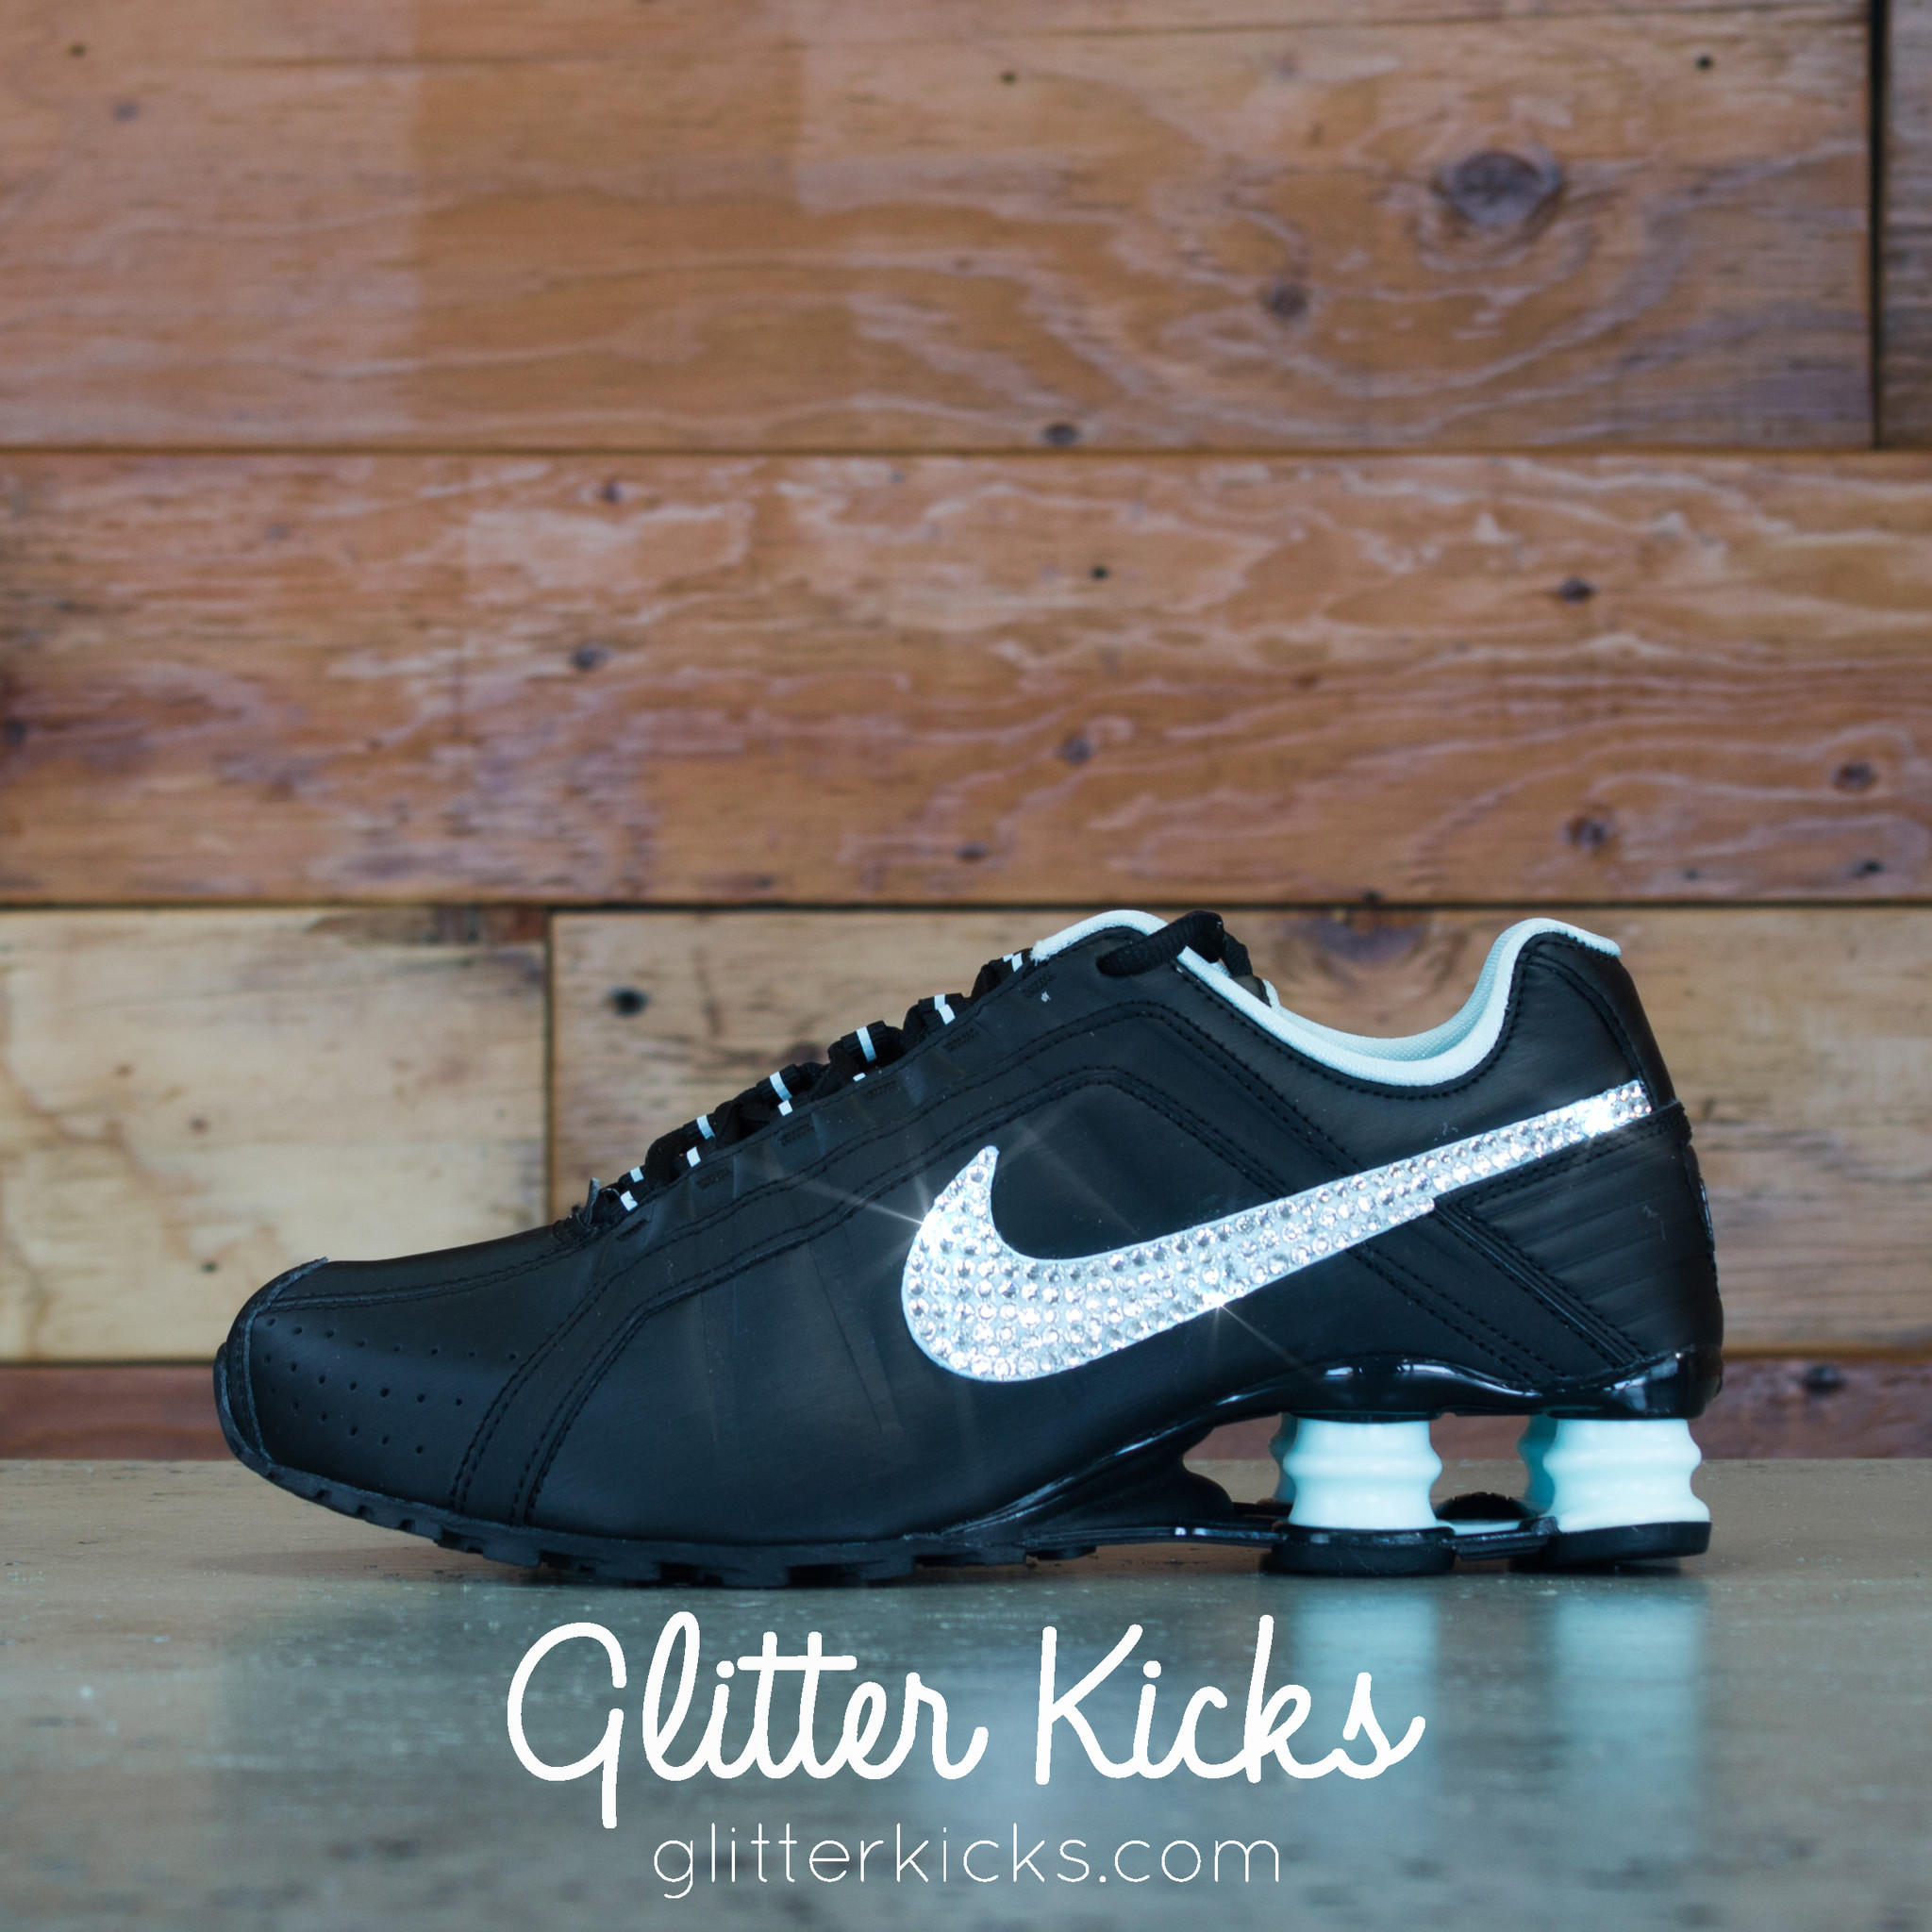 Nike Shox Current Glitter Kicks Running from Glitter Kicks b7749ab1e4